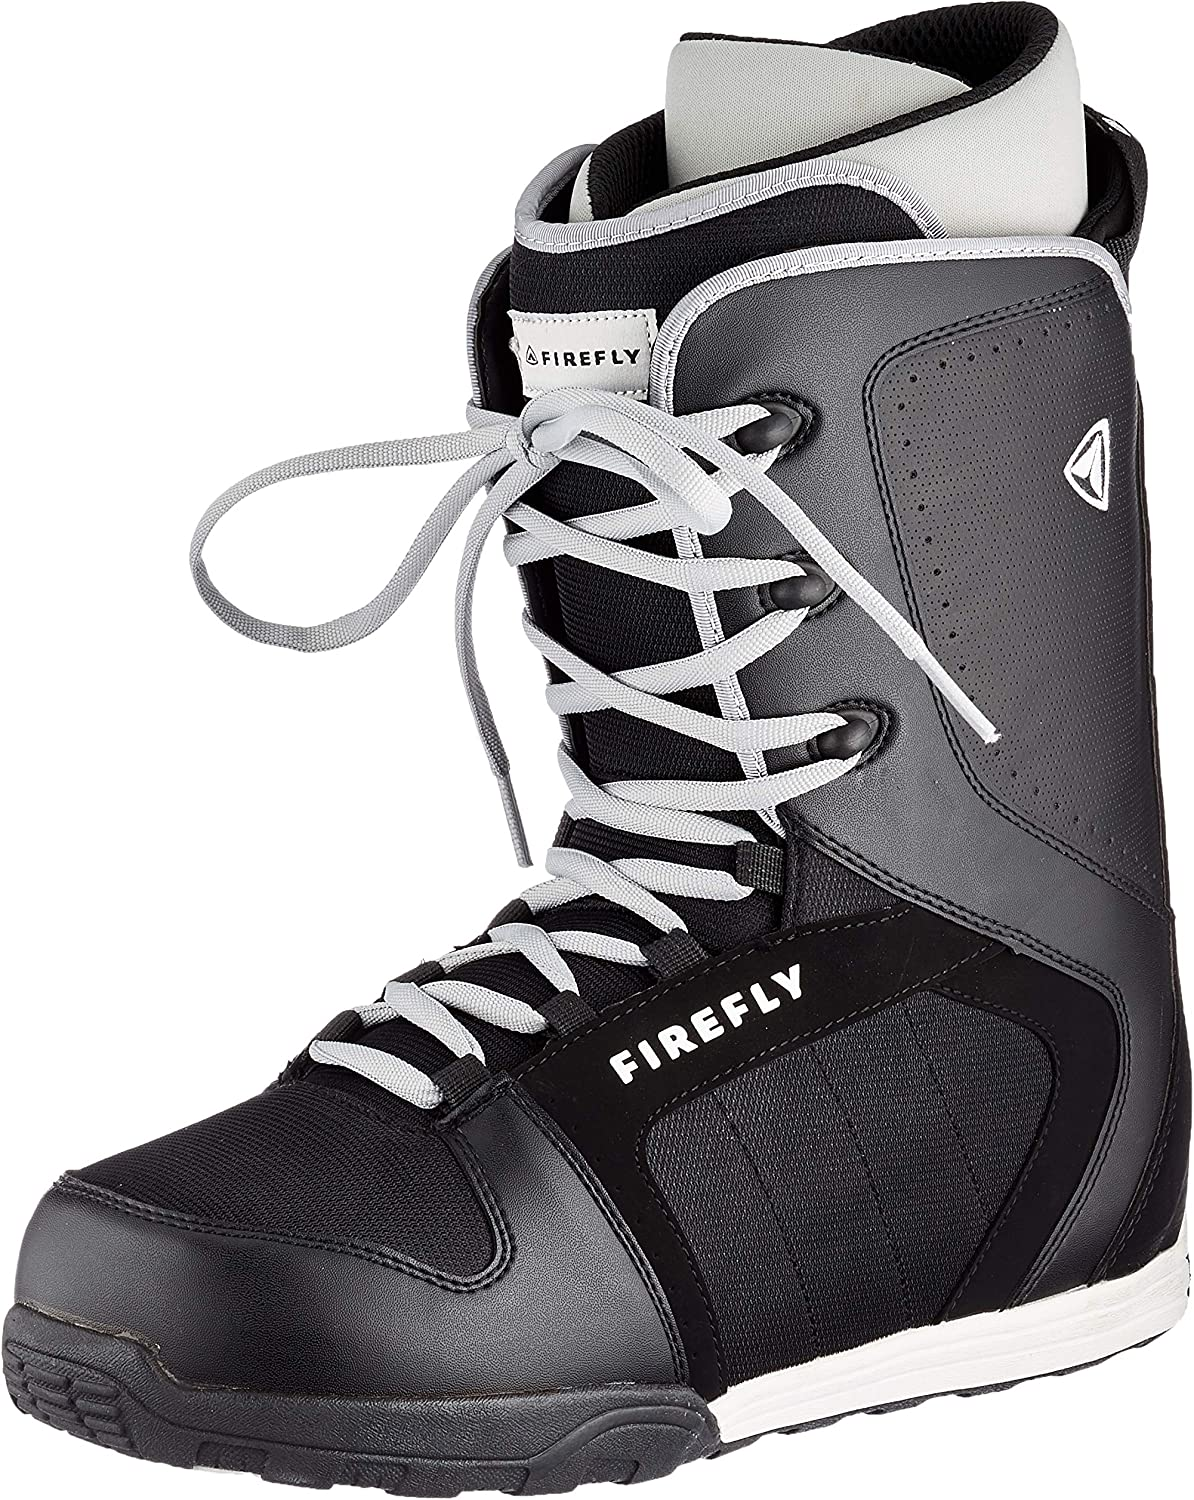 Firefly New popularity Men's C 30 Snowboard 29 2021new shipping free shipping White Black Boot